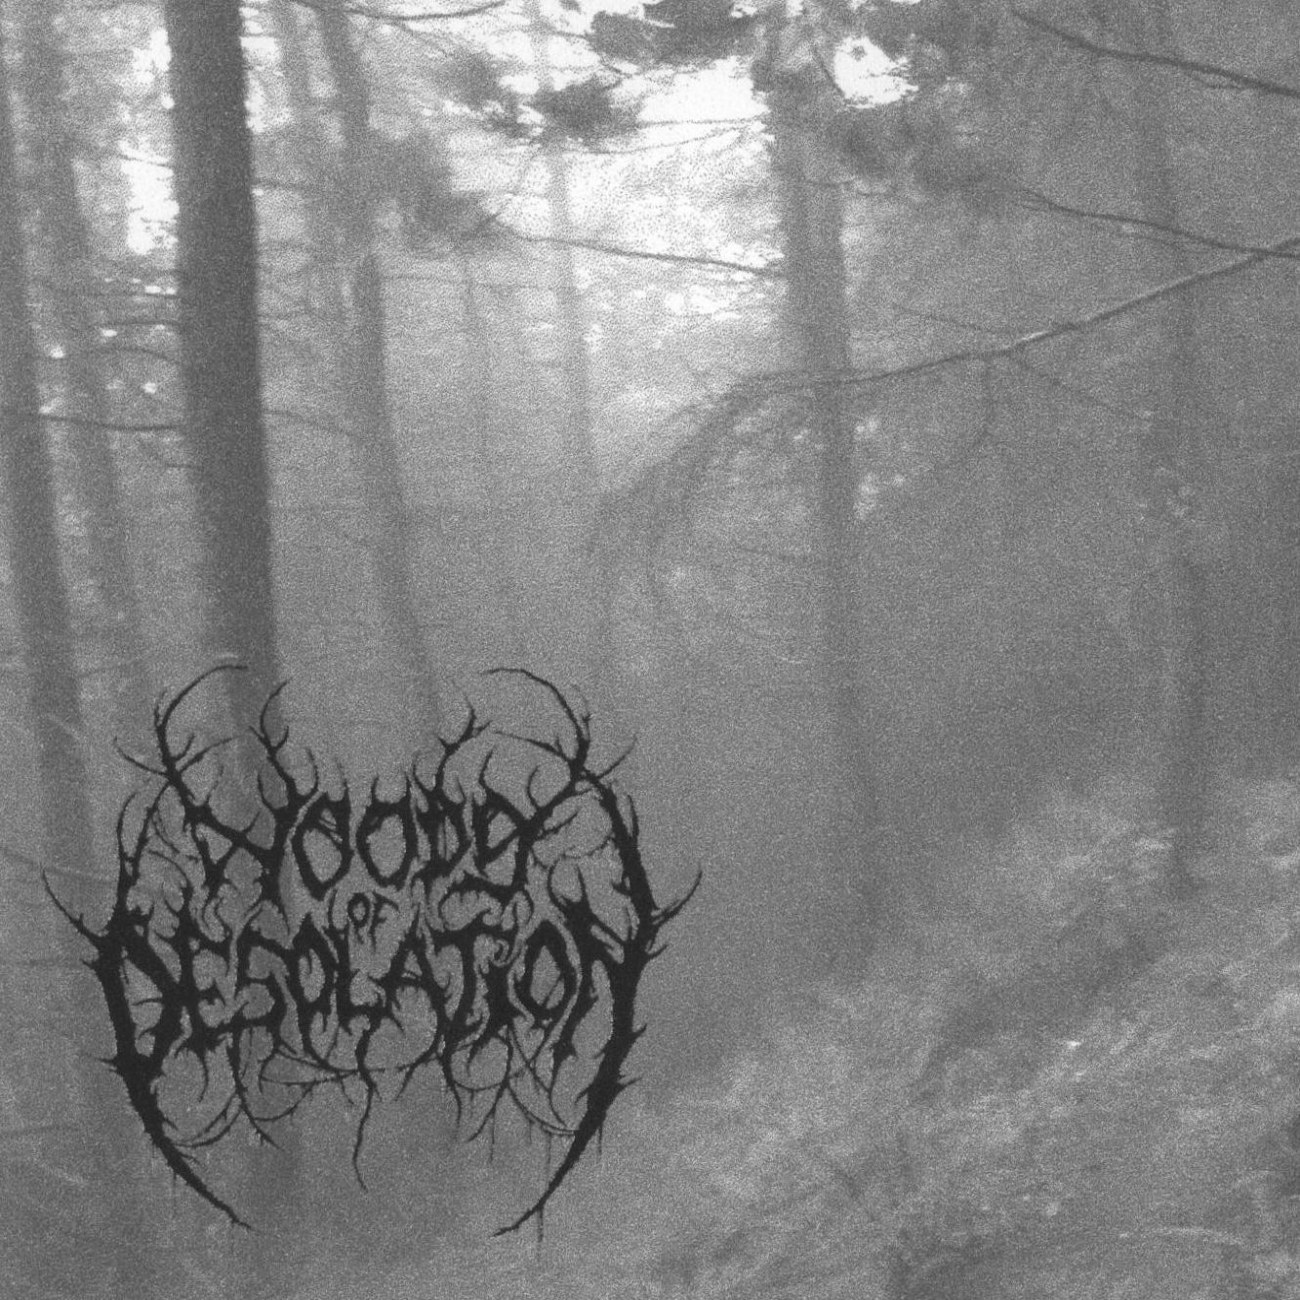 Review for Woods of Desolation - Woods of Desolation